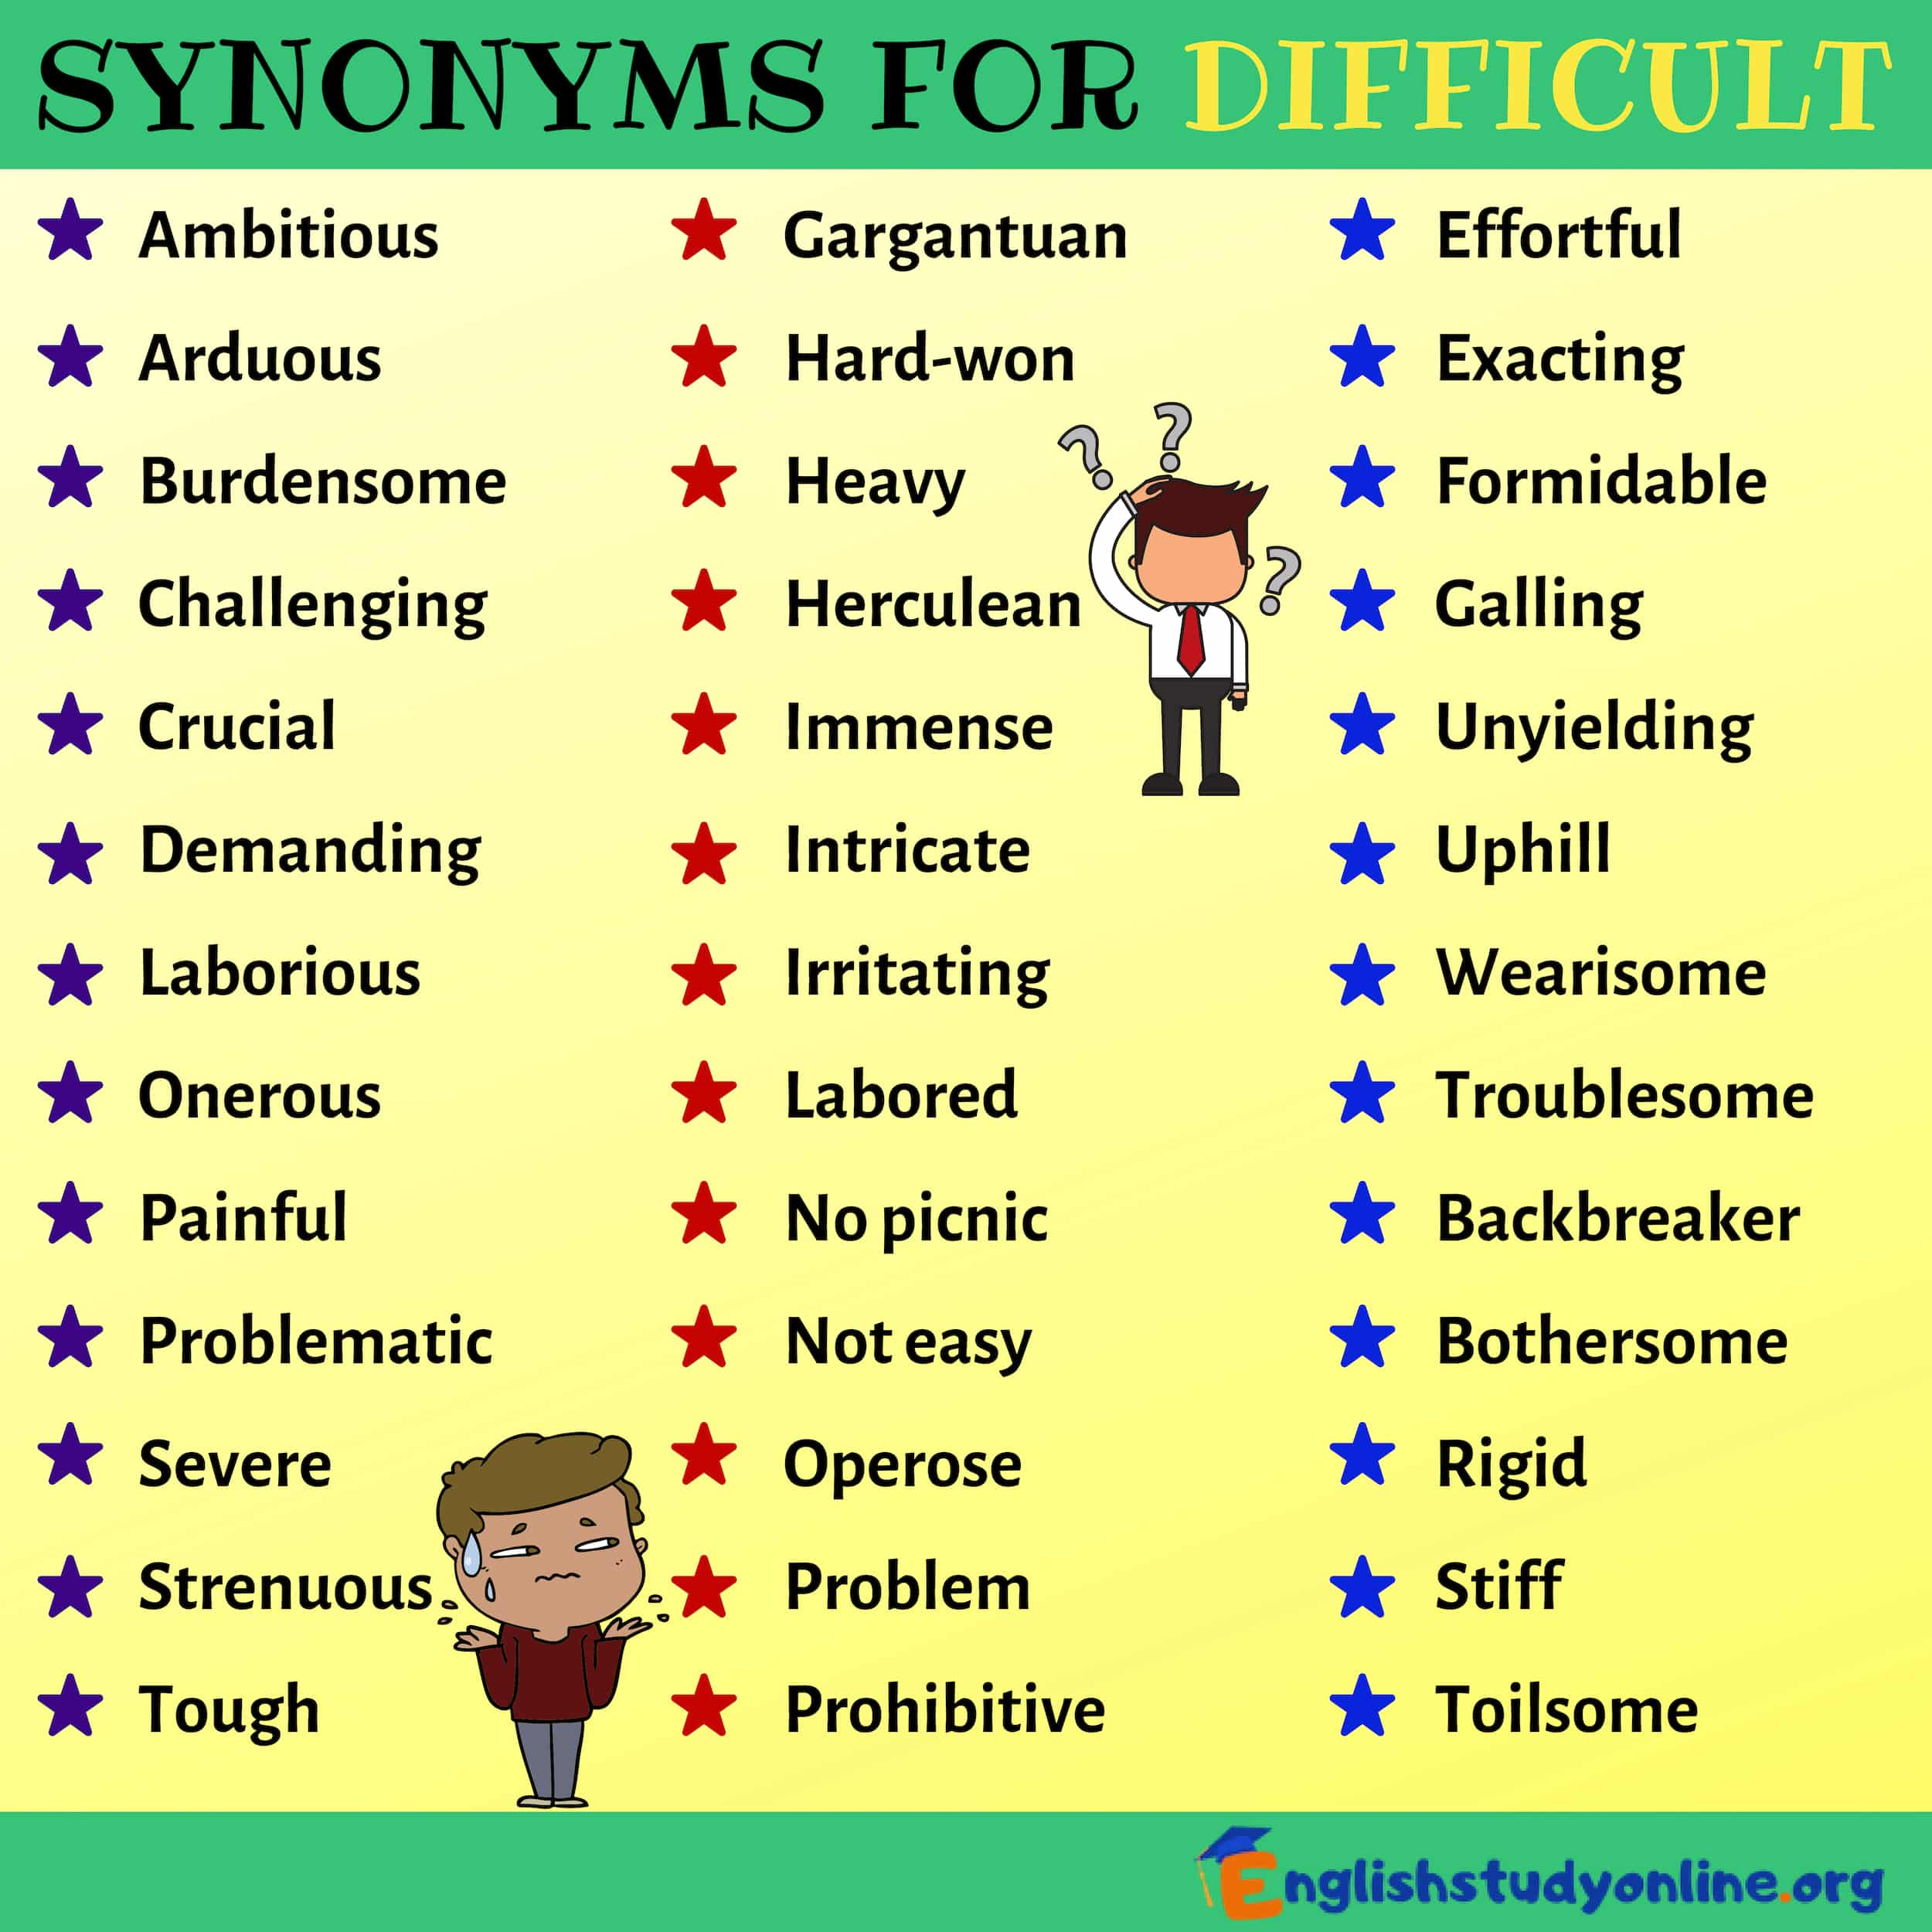 Synonyms for DIFFICULT